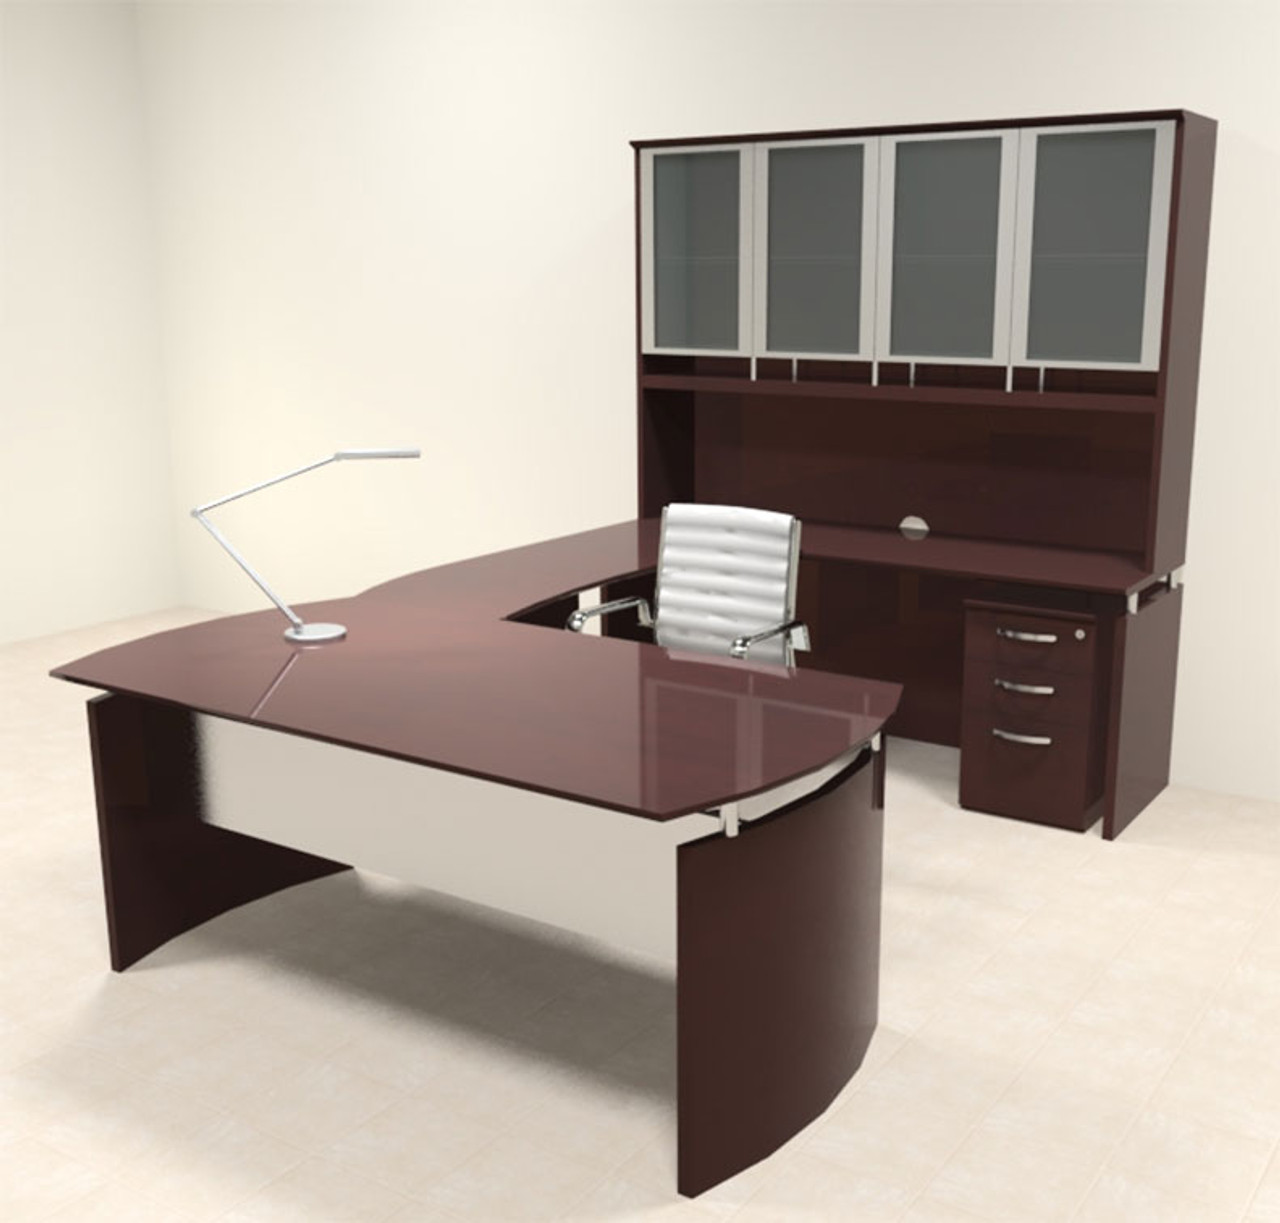 5pc Modern Contemporary U Shape Executive Office Desk Set, #RO-NAP-U6